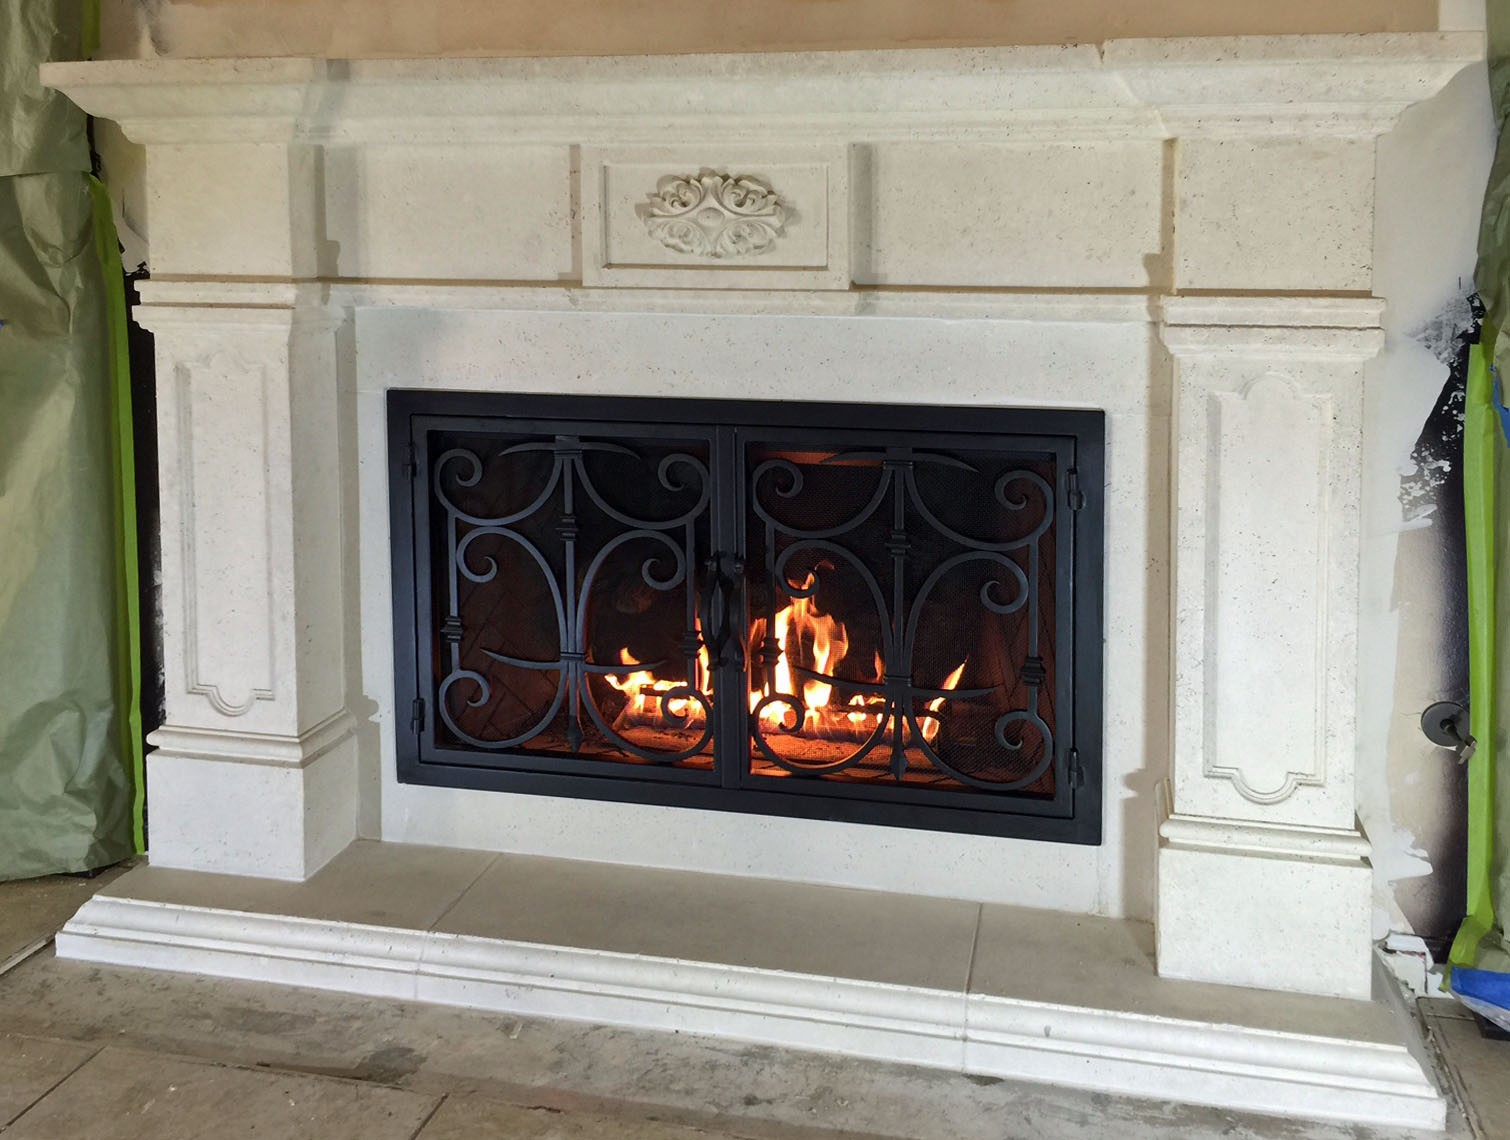 Mt231 Fireplace Mantels Fireplace Surrounds Iron Fireplace Doors And Screens In San Diego